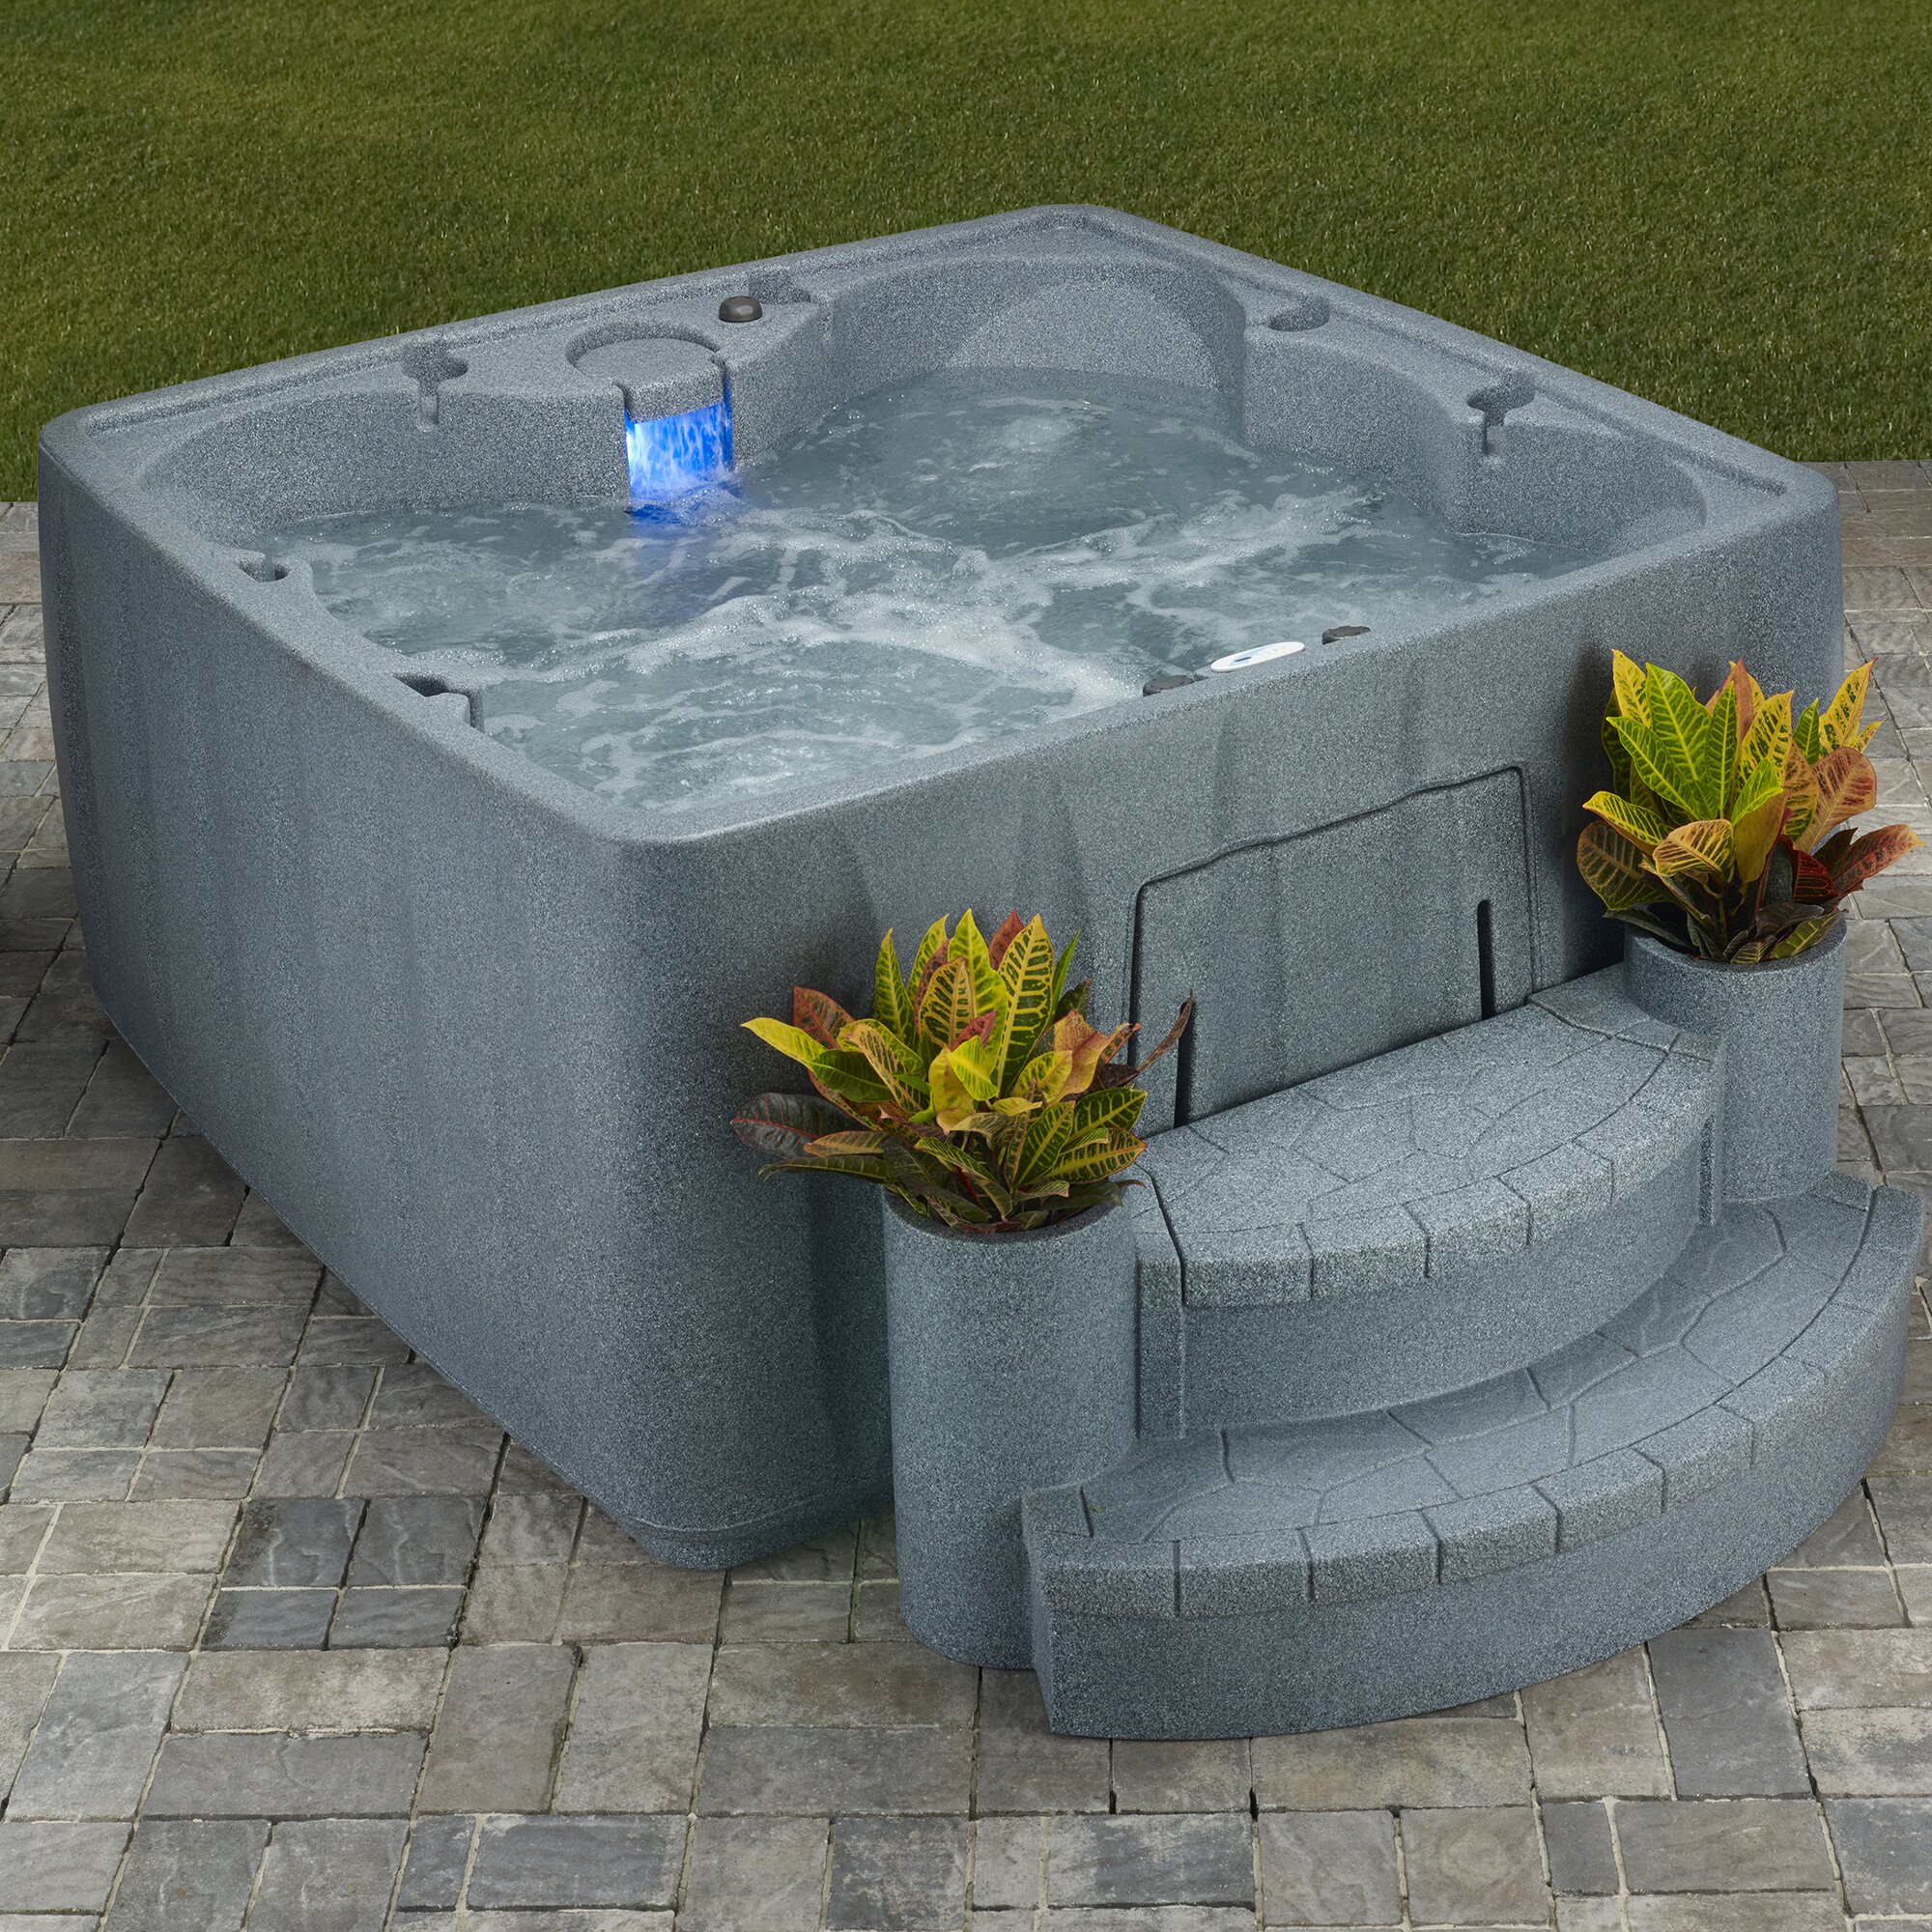 hot-tub+600+6-Person+29-Jet+Plug+and+Play+Hot+Tub+with+Heater+and+Waterfall.jpeg